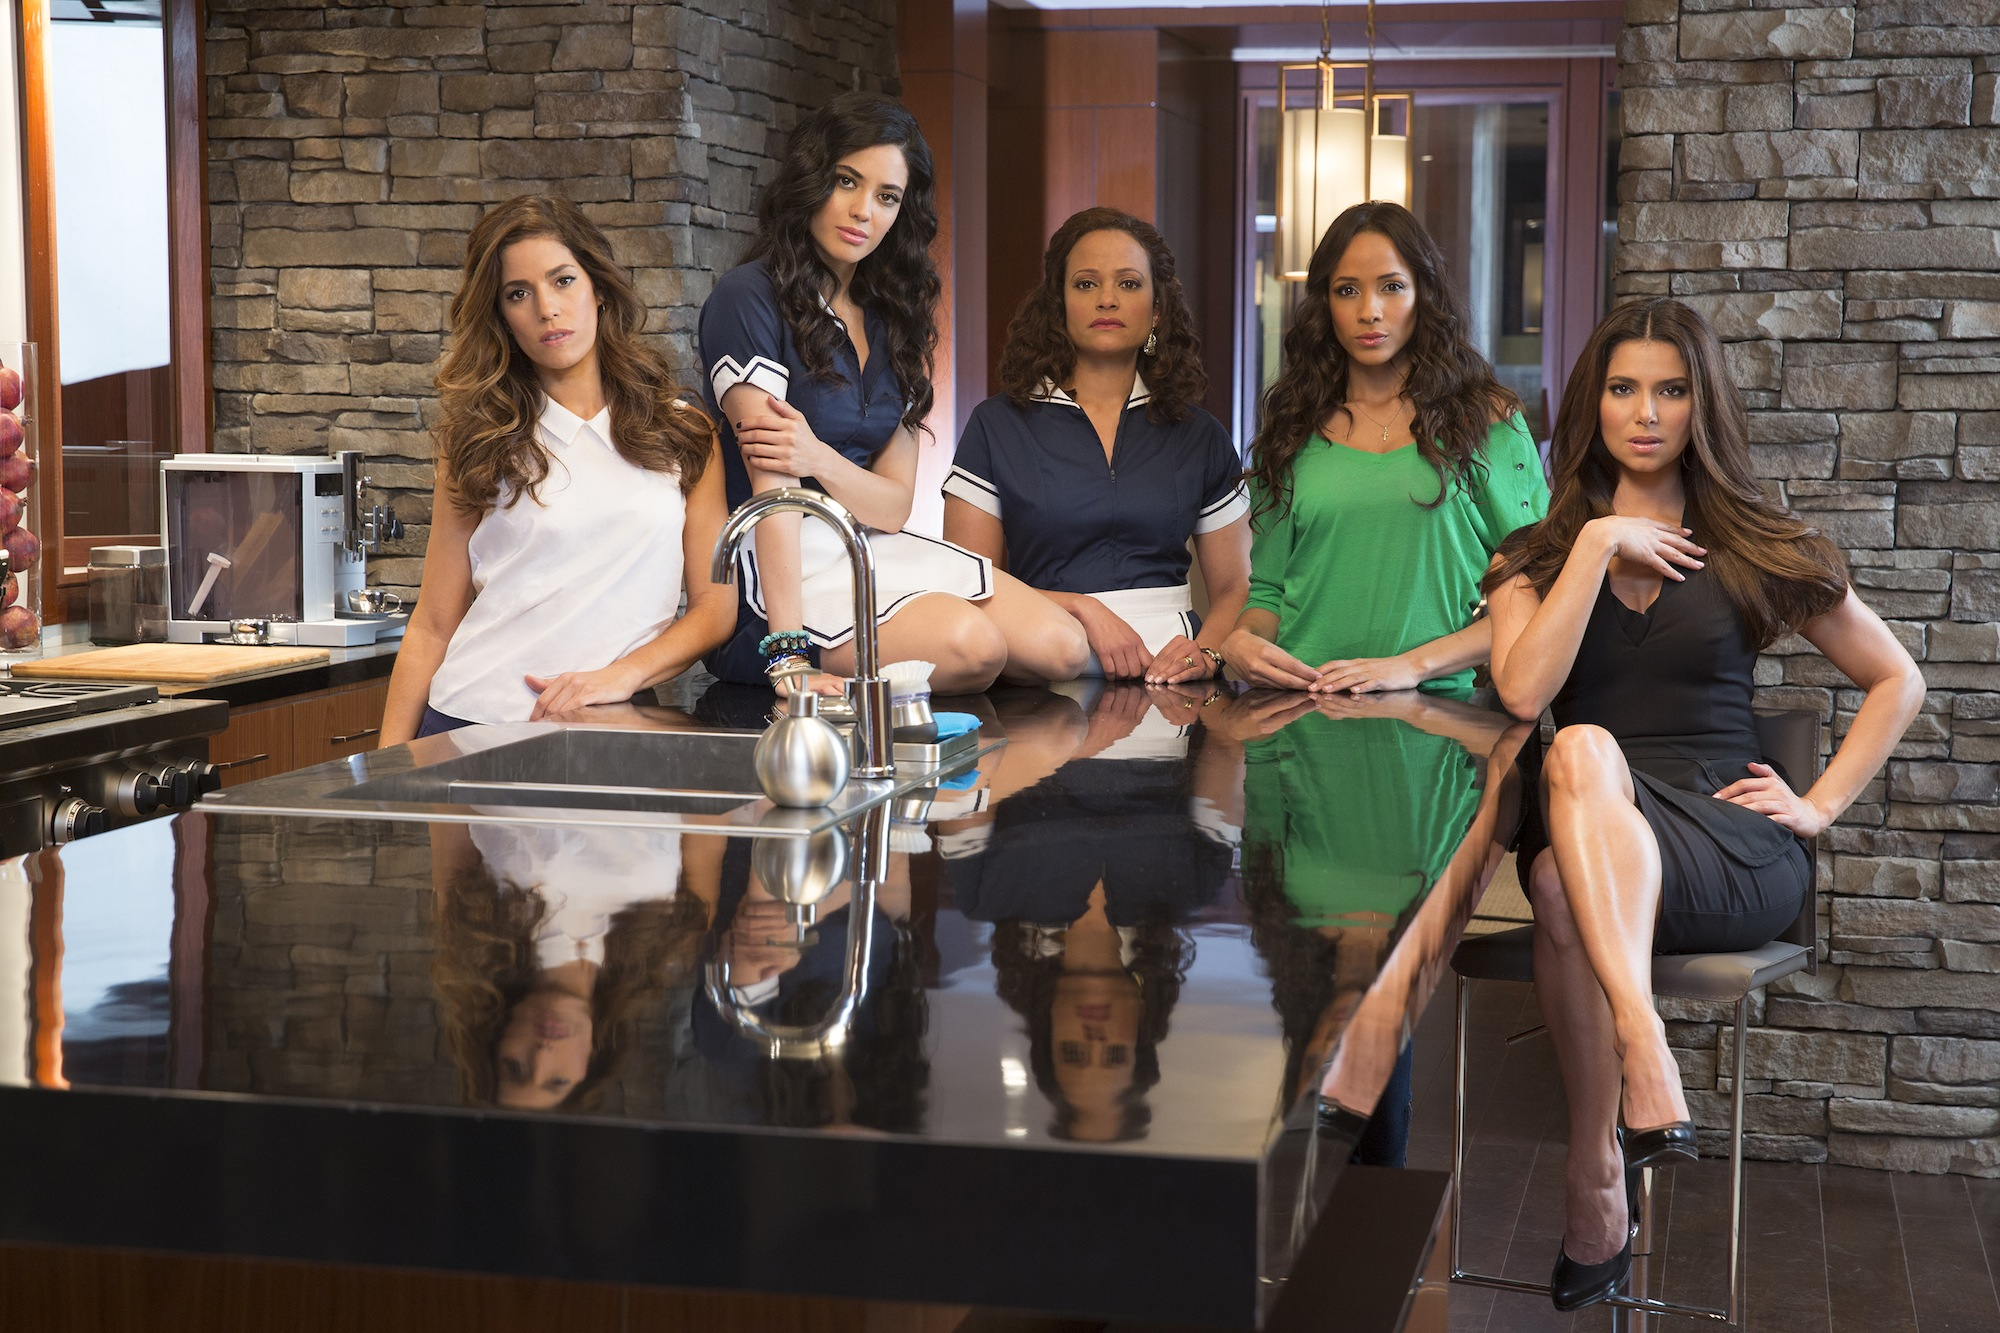 Will Lifetime Develop More Latino Programming Because Of The Success Of 'Devious Maids'?